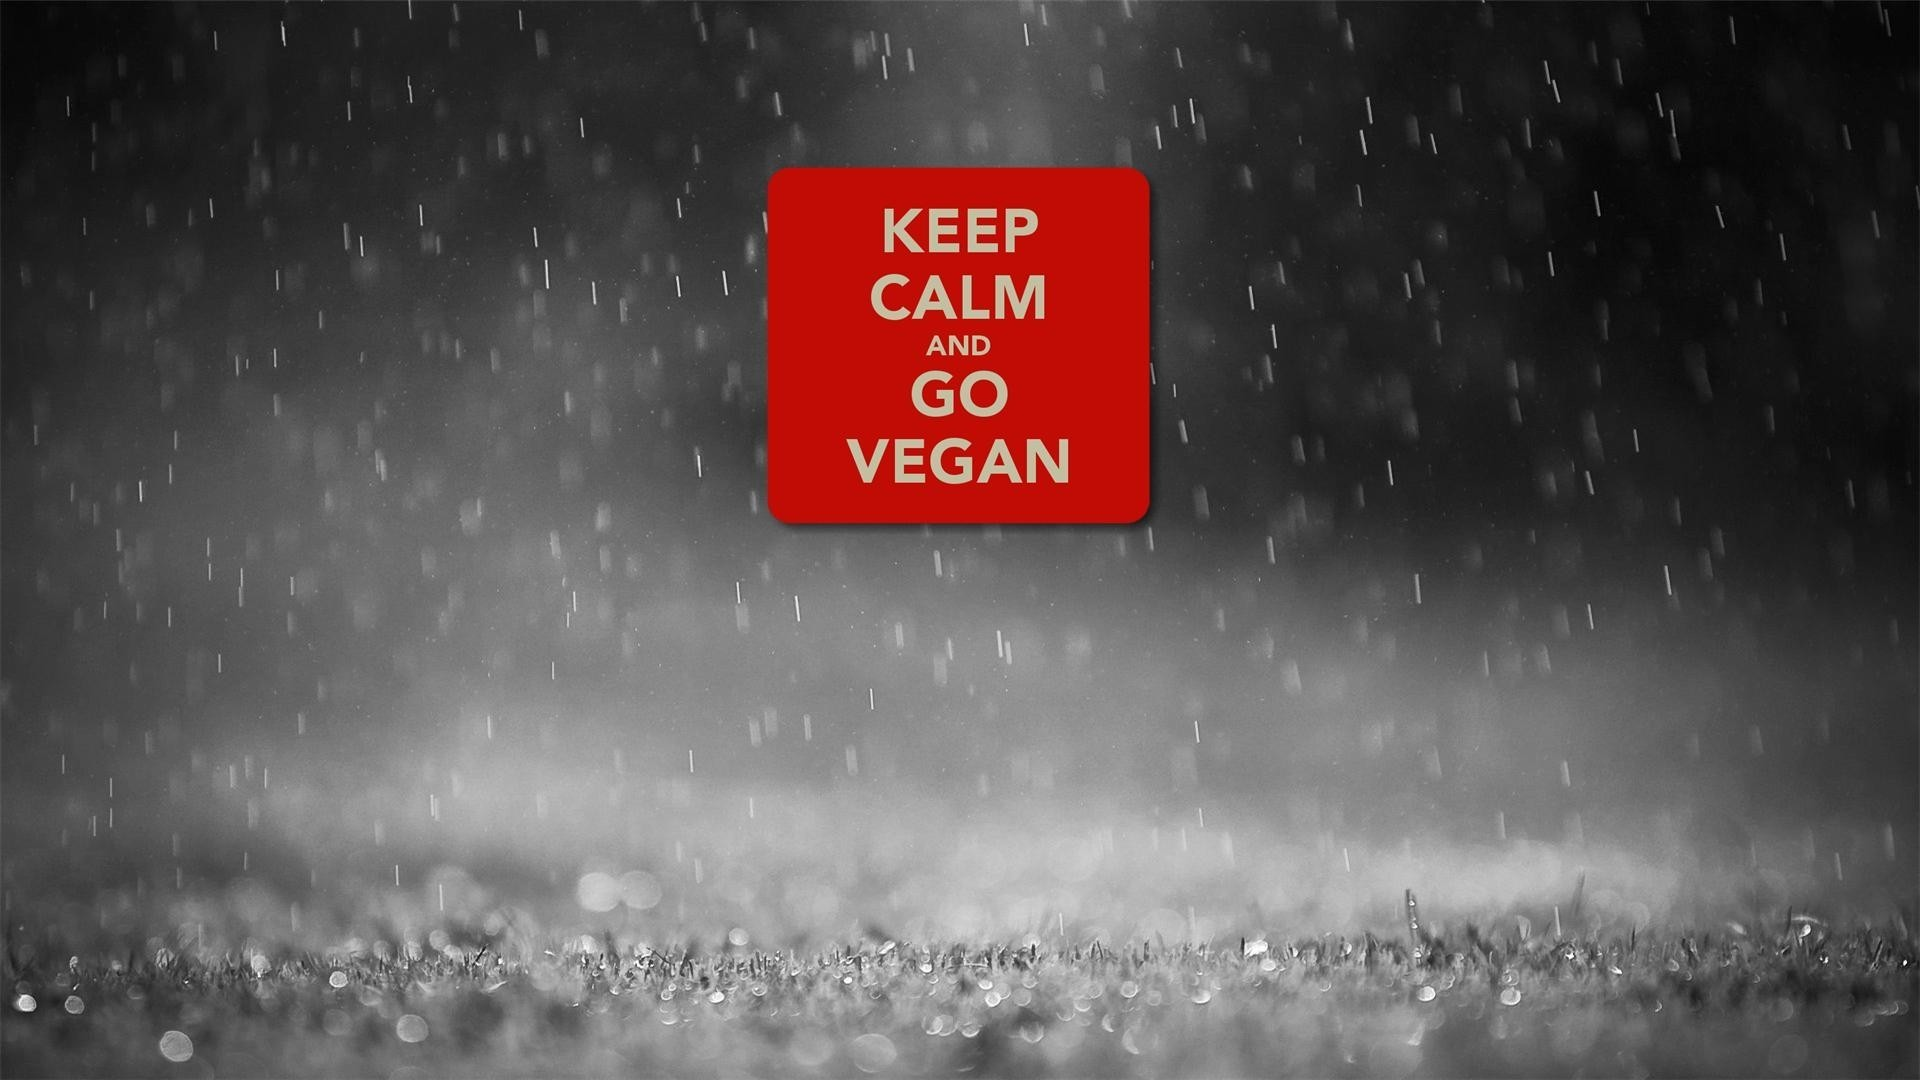 1920x1080 Keep calm and go vegan wallpaper